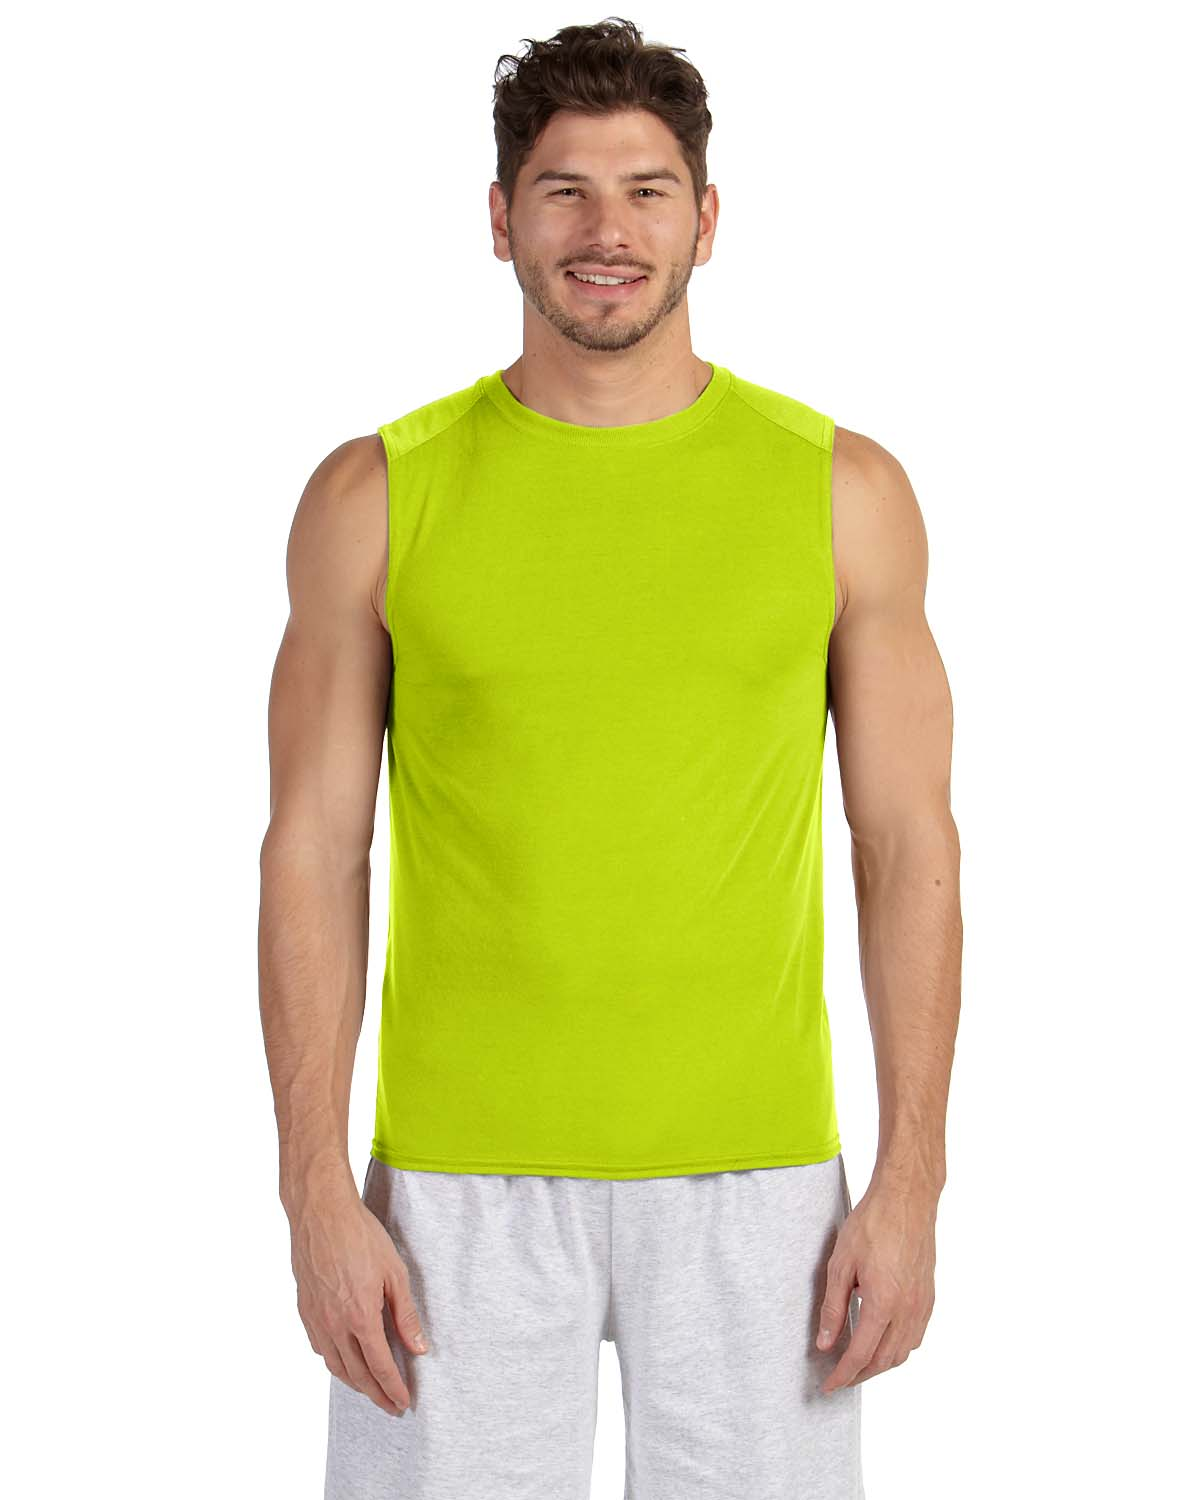 New gildan performance dri fit sleeveless muscle t shirt for Buy dri fit shirts